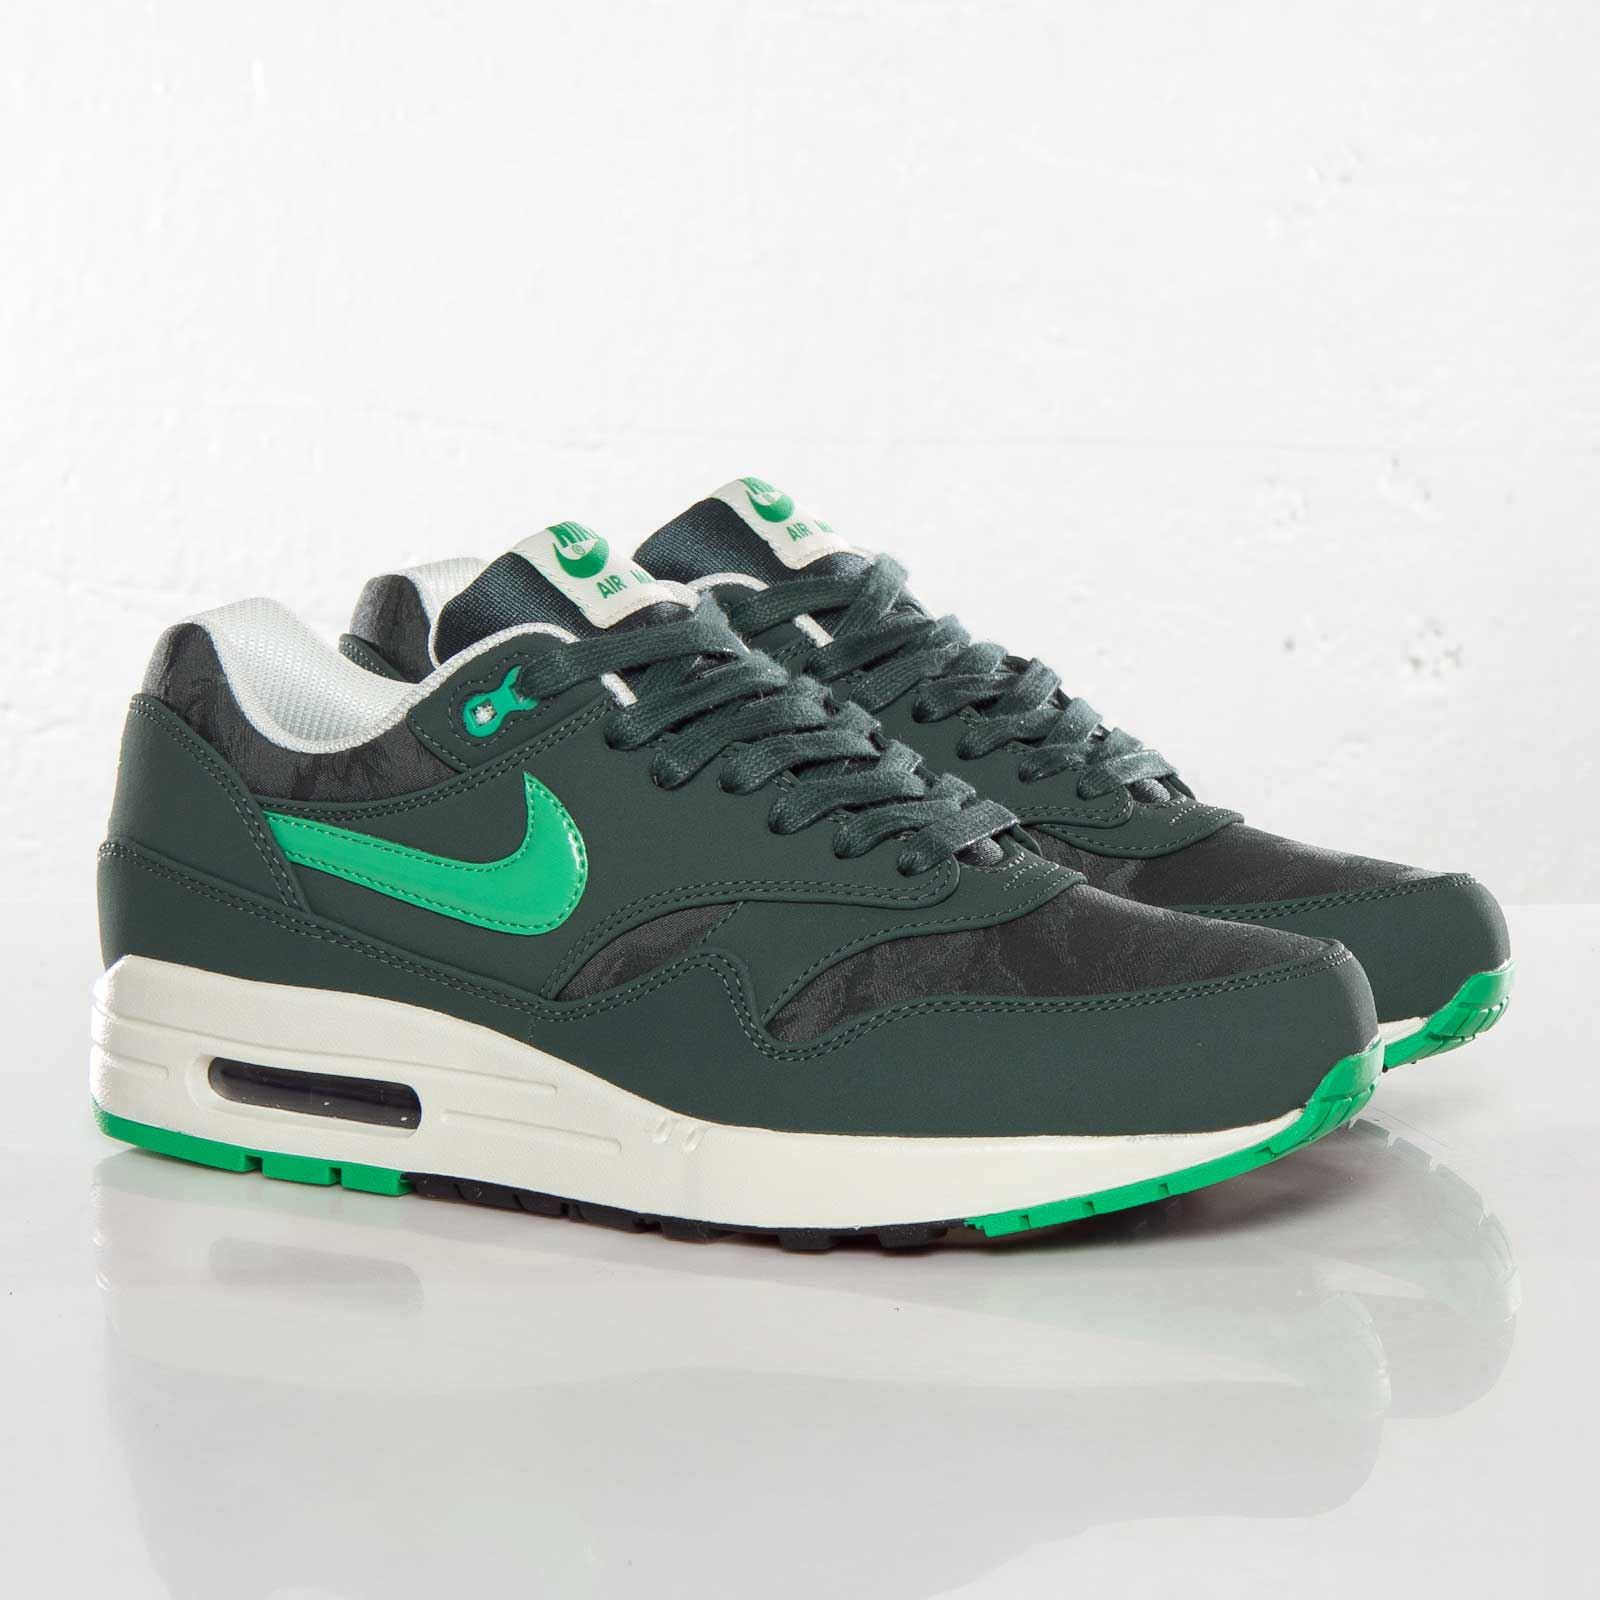 Nike Mens Air Max 1 Vintage Green Trainers 512033 330